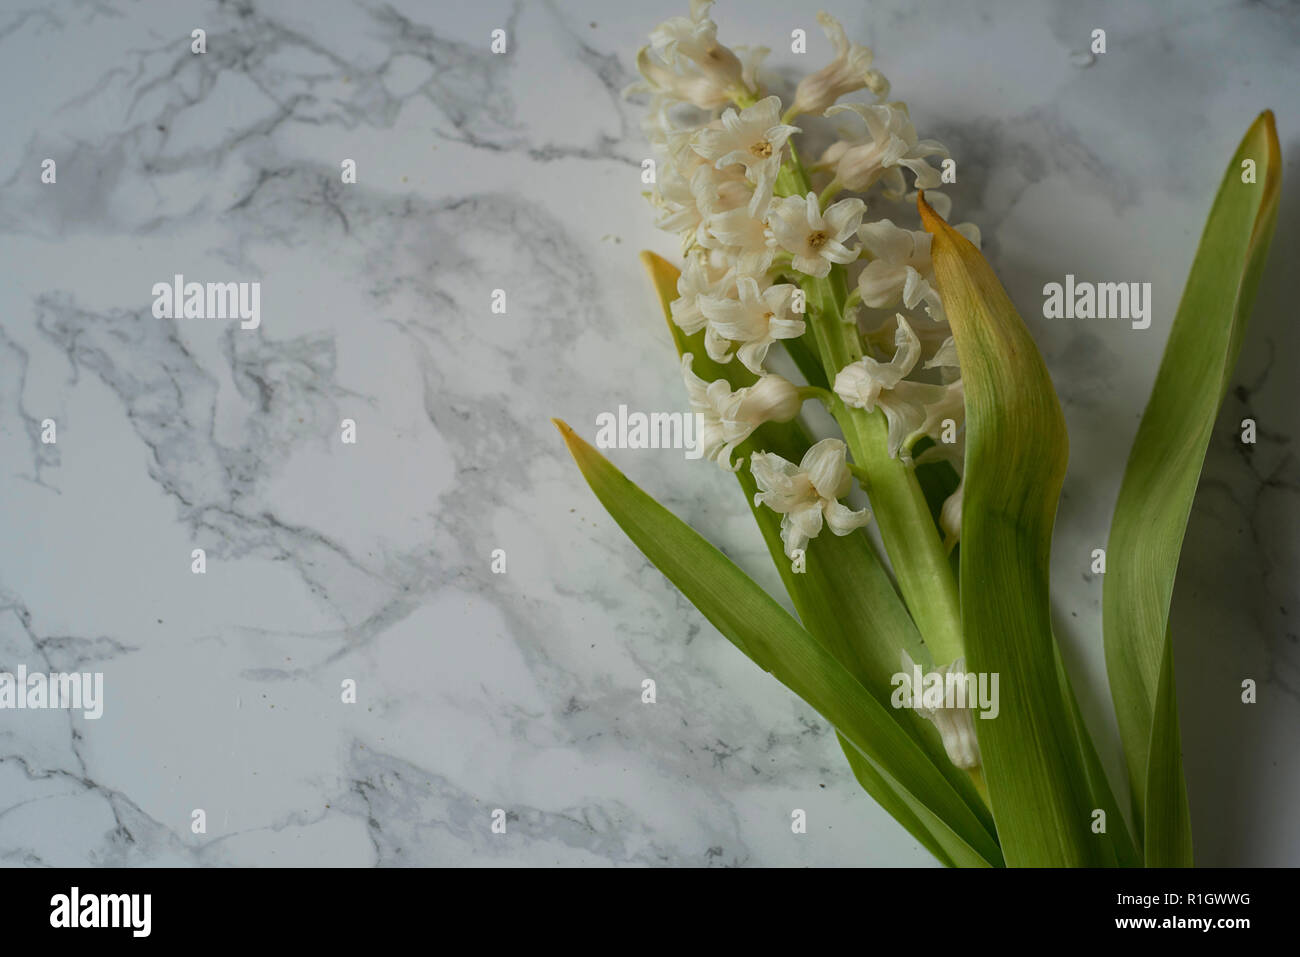 Solemn Hyacinth Flower Bunch Lying on Cool Marble Among Pollen and Water Droplets - Stock Image